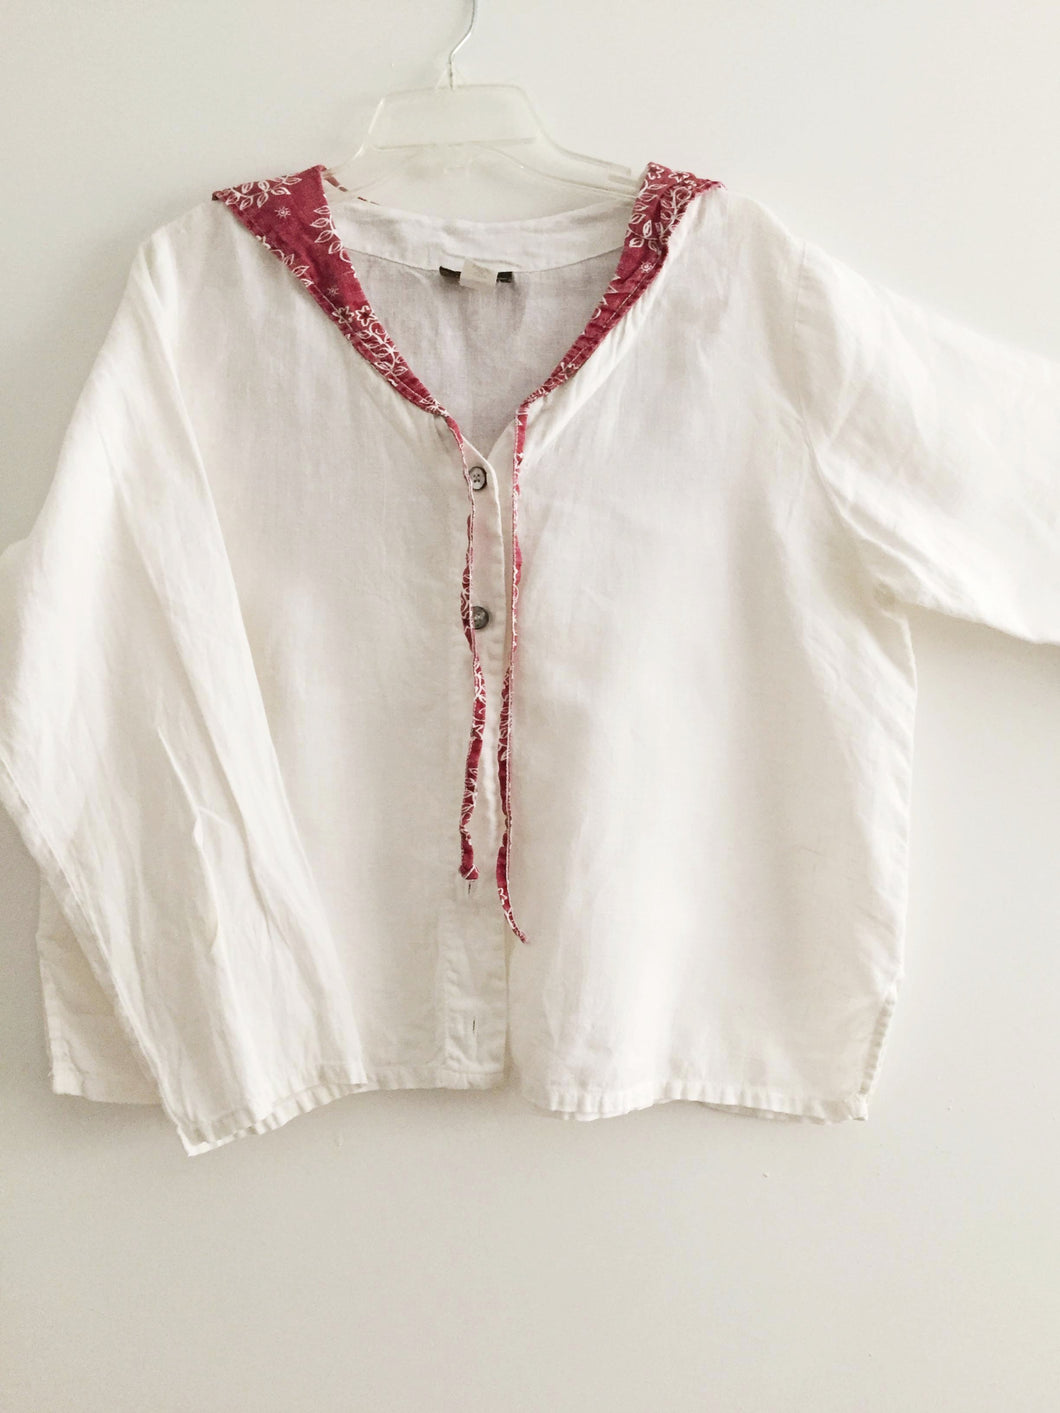 Liz & Jane jacket lagenlook white 100% Linen Layered M L